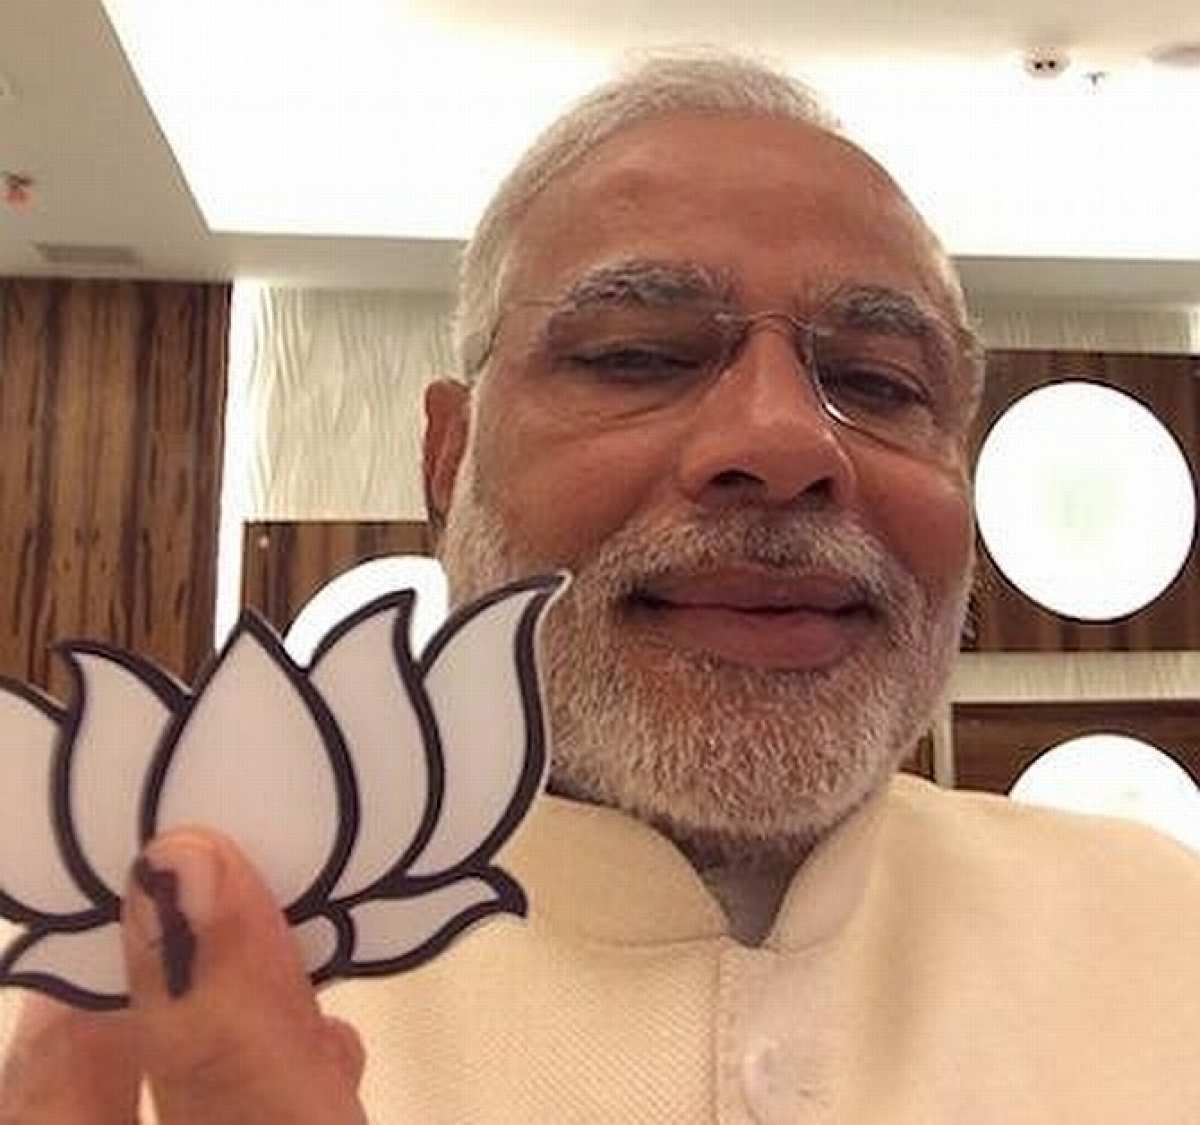 Even at 65, Birthday Boy Modi's Selfie Game is Tight - The Quint